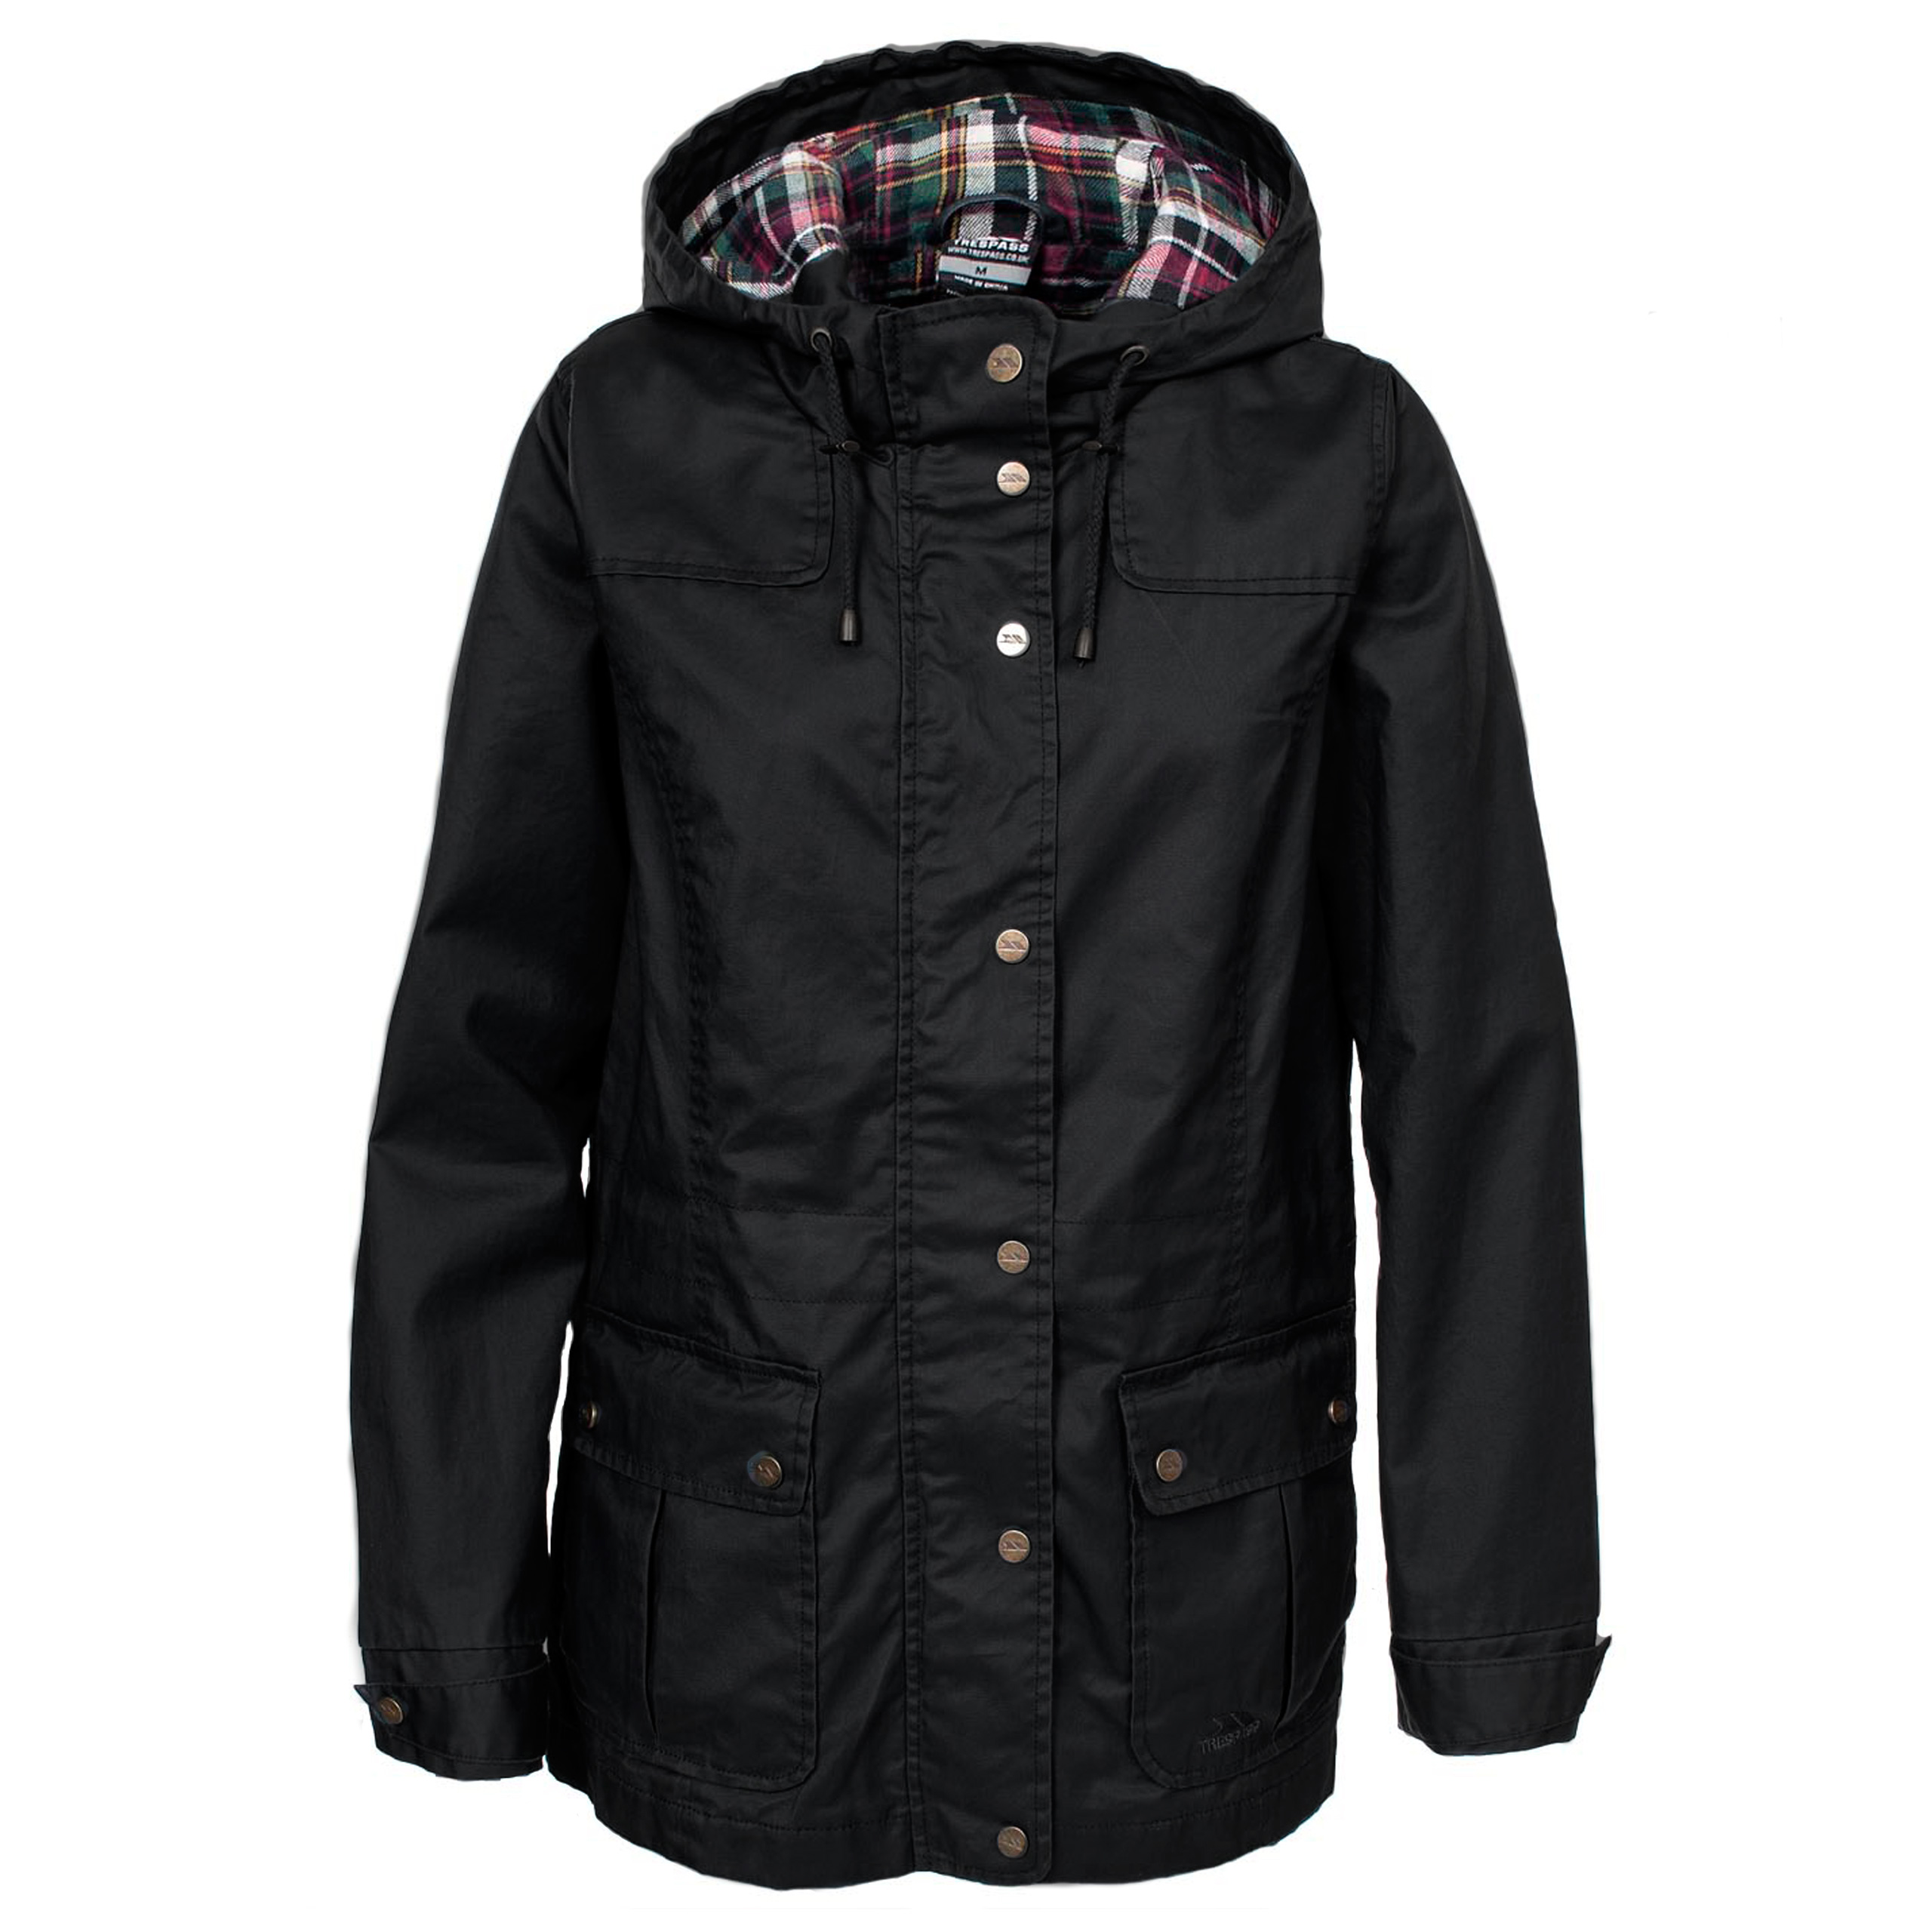 Womens wax jackets uk